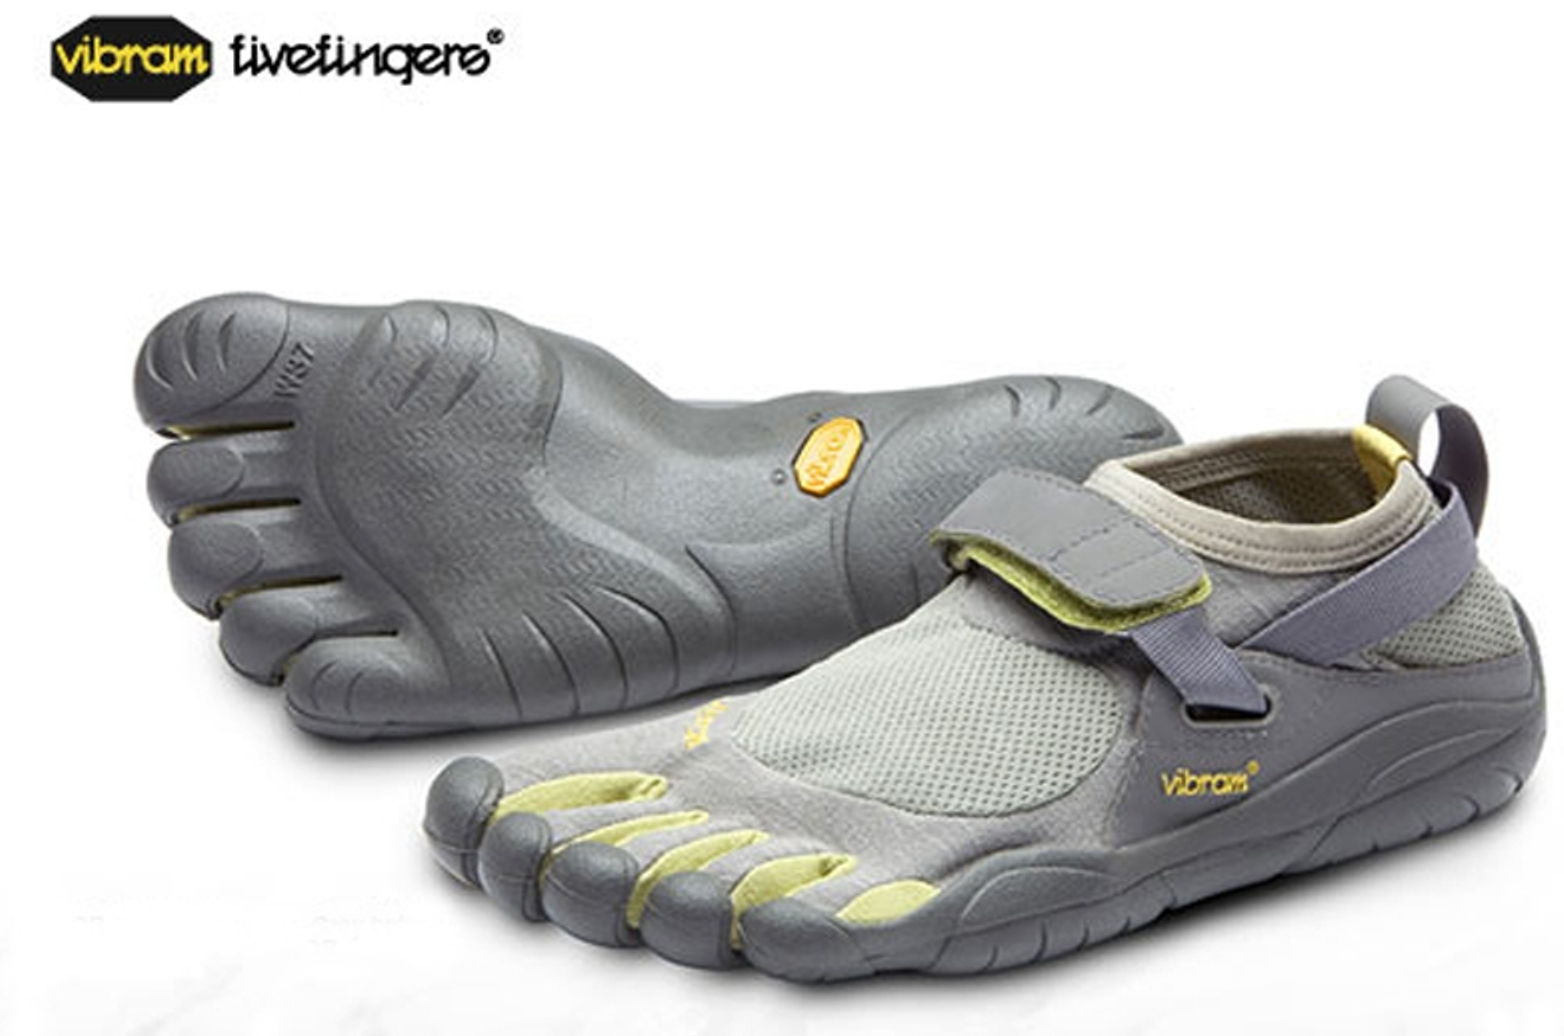 shoes that look like feet